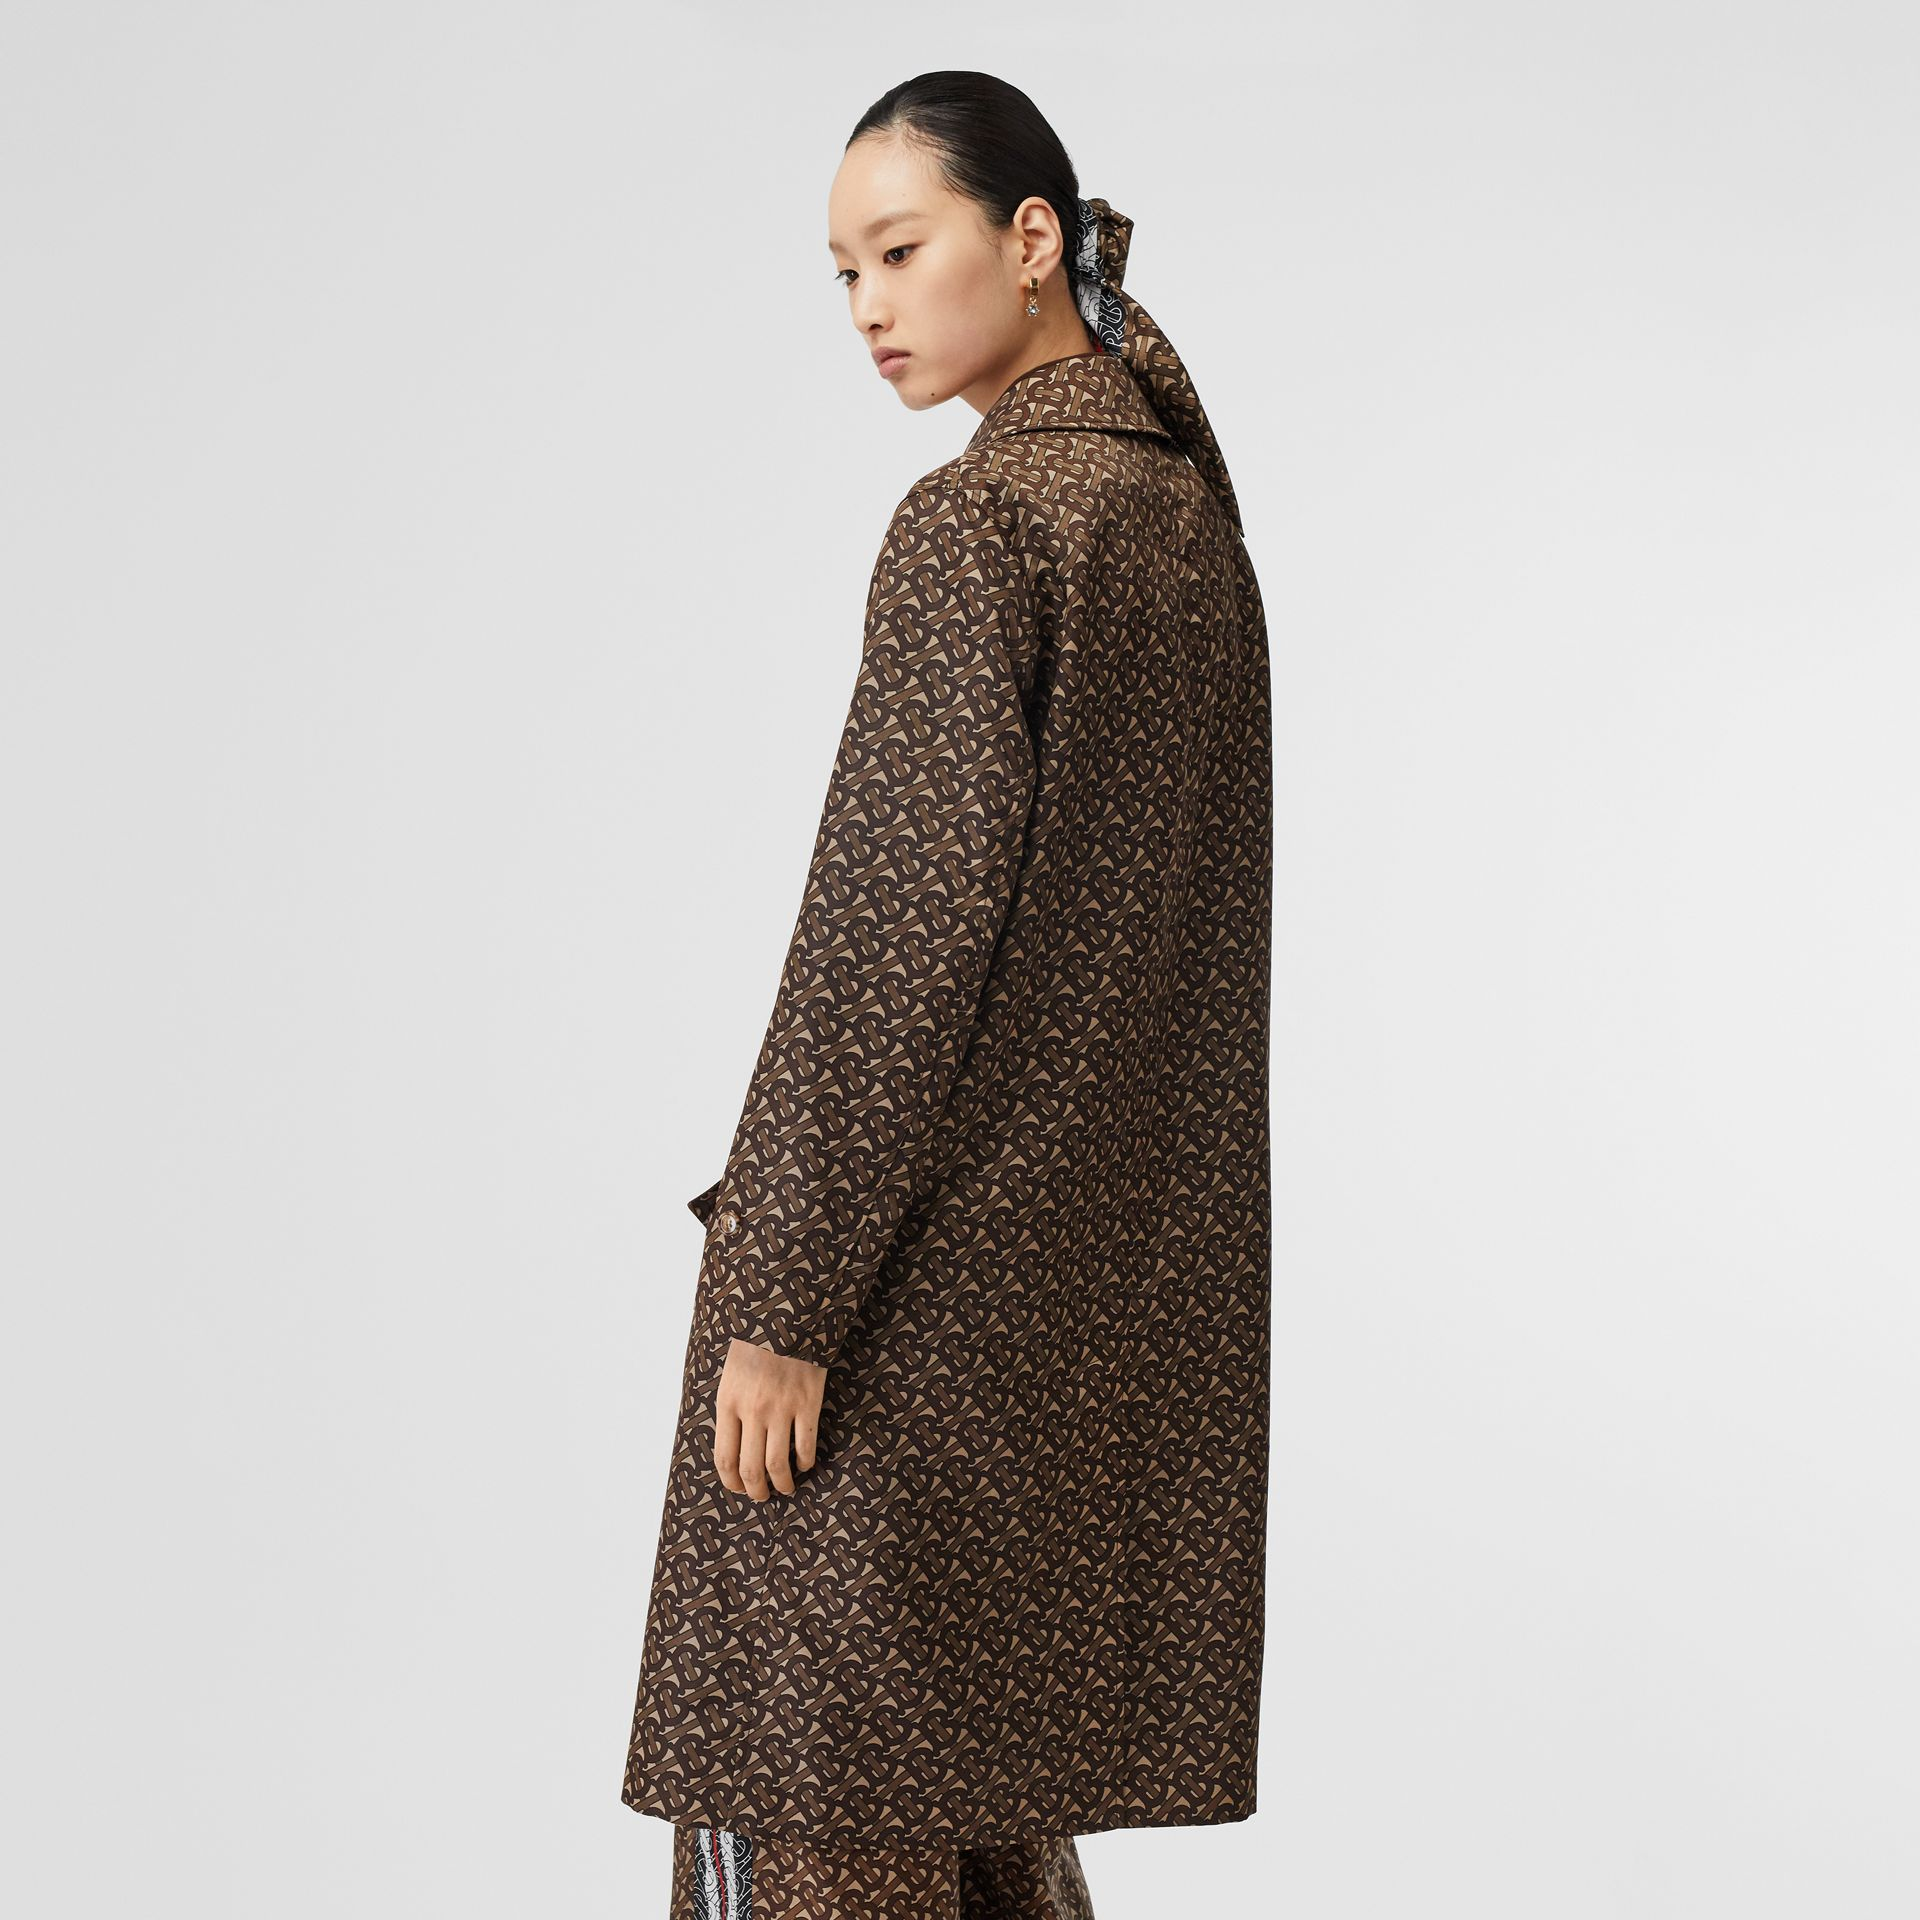 Monogram Stripe Print Nylon Car Coat in Bridle Brown - Women | Burberry United States - gallery image 2